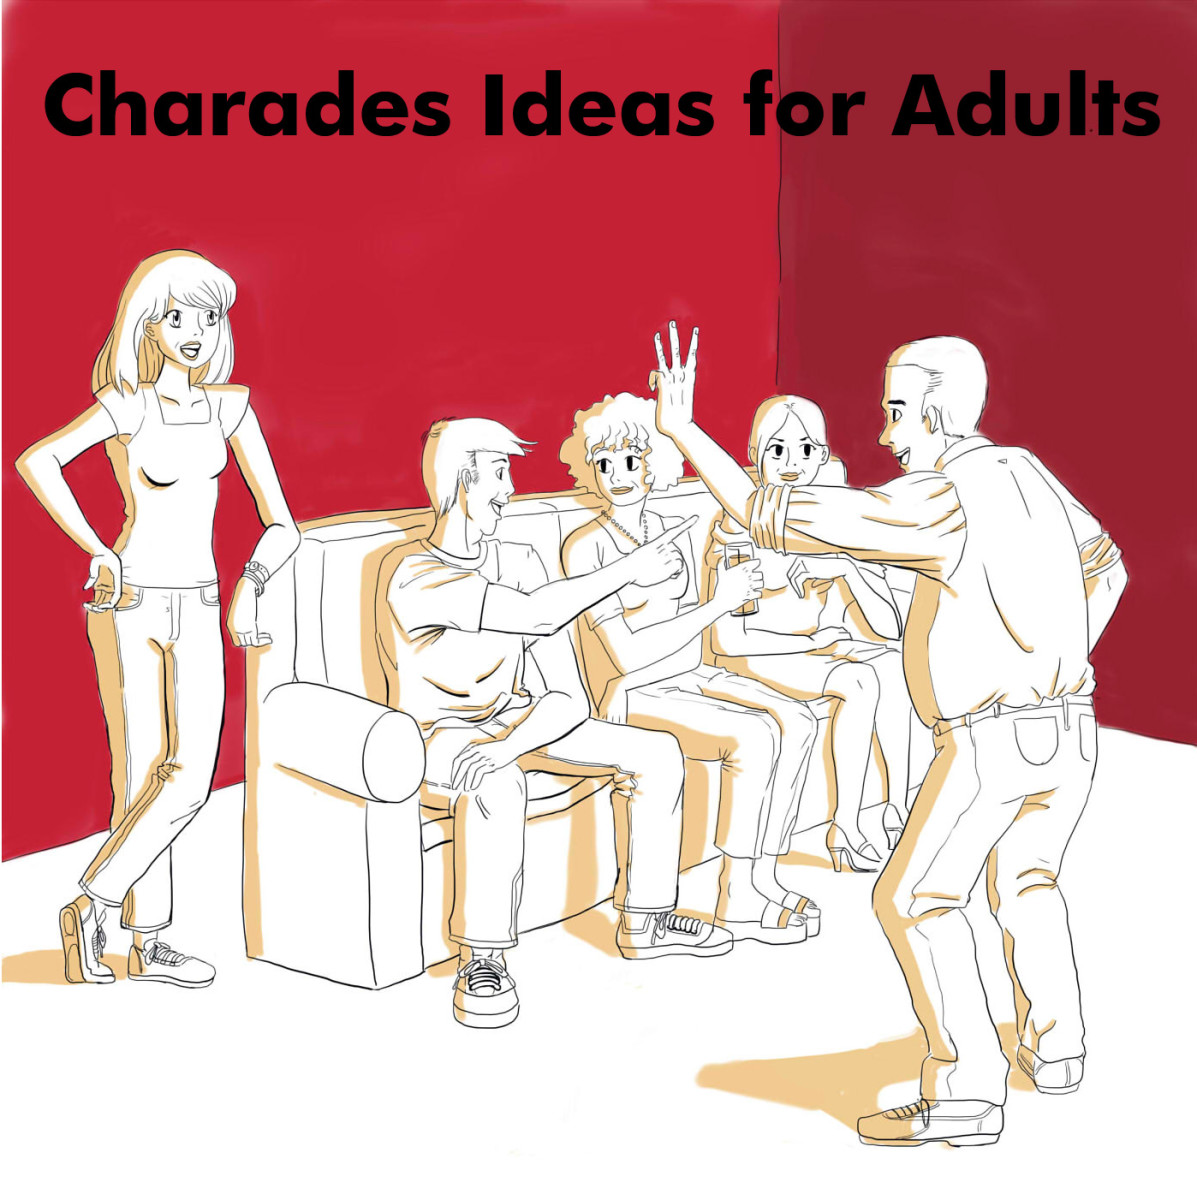 Charades words list ideas for adults for Fun ideas for adults